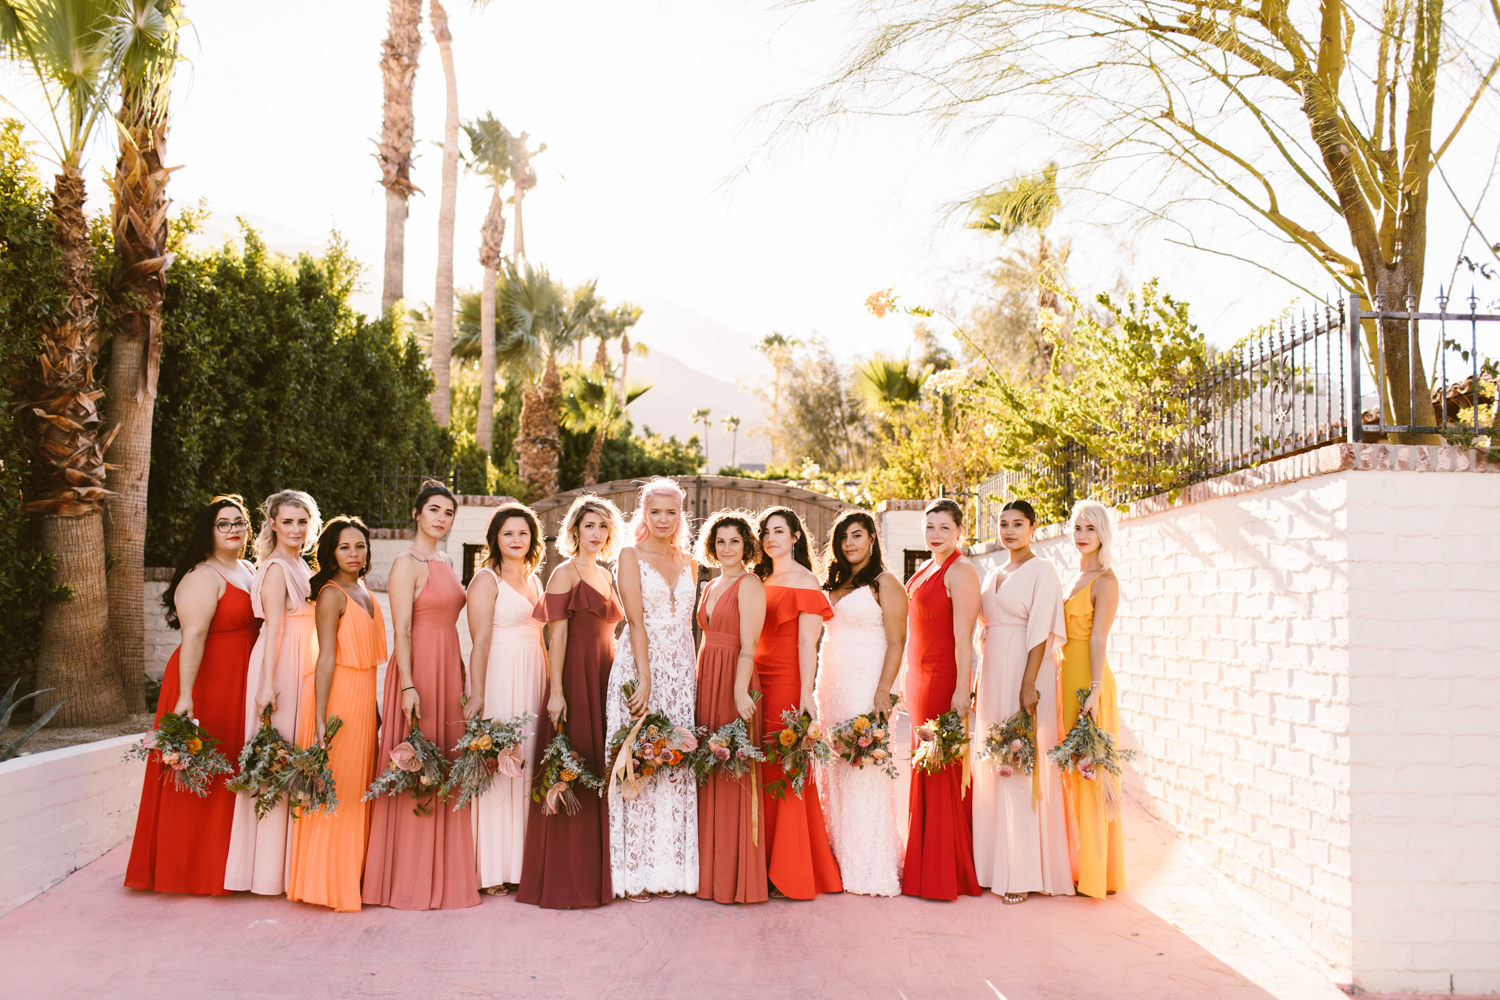 westlund-photography-palm-springs-wedding-26.jpg